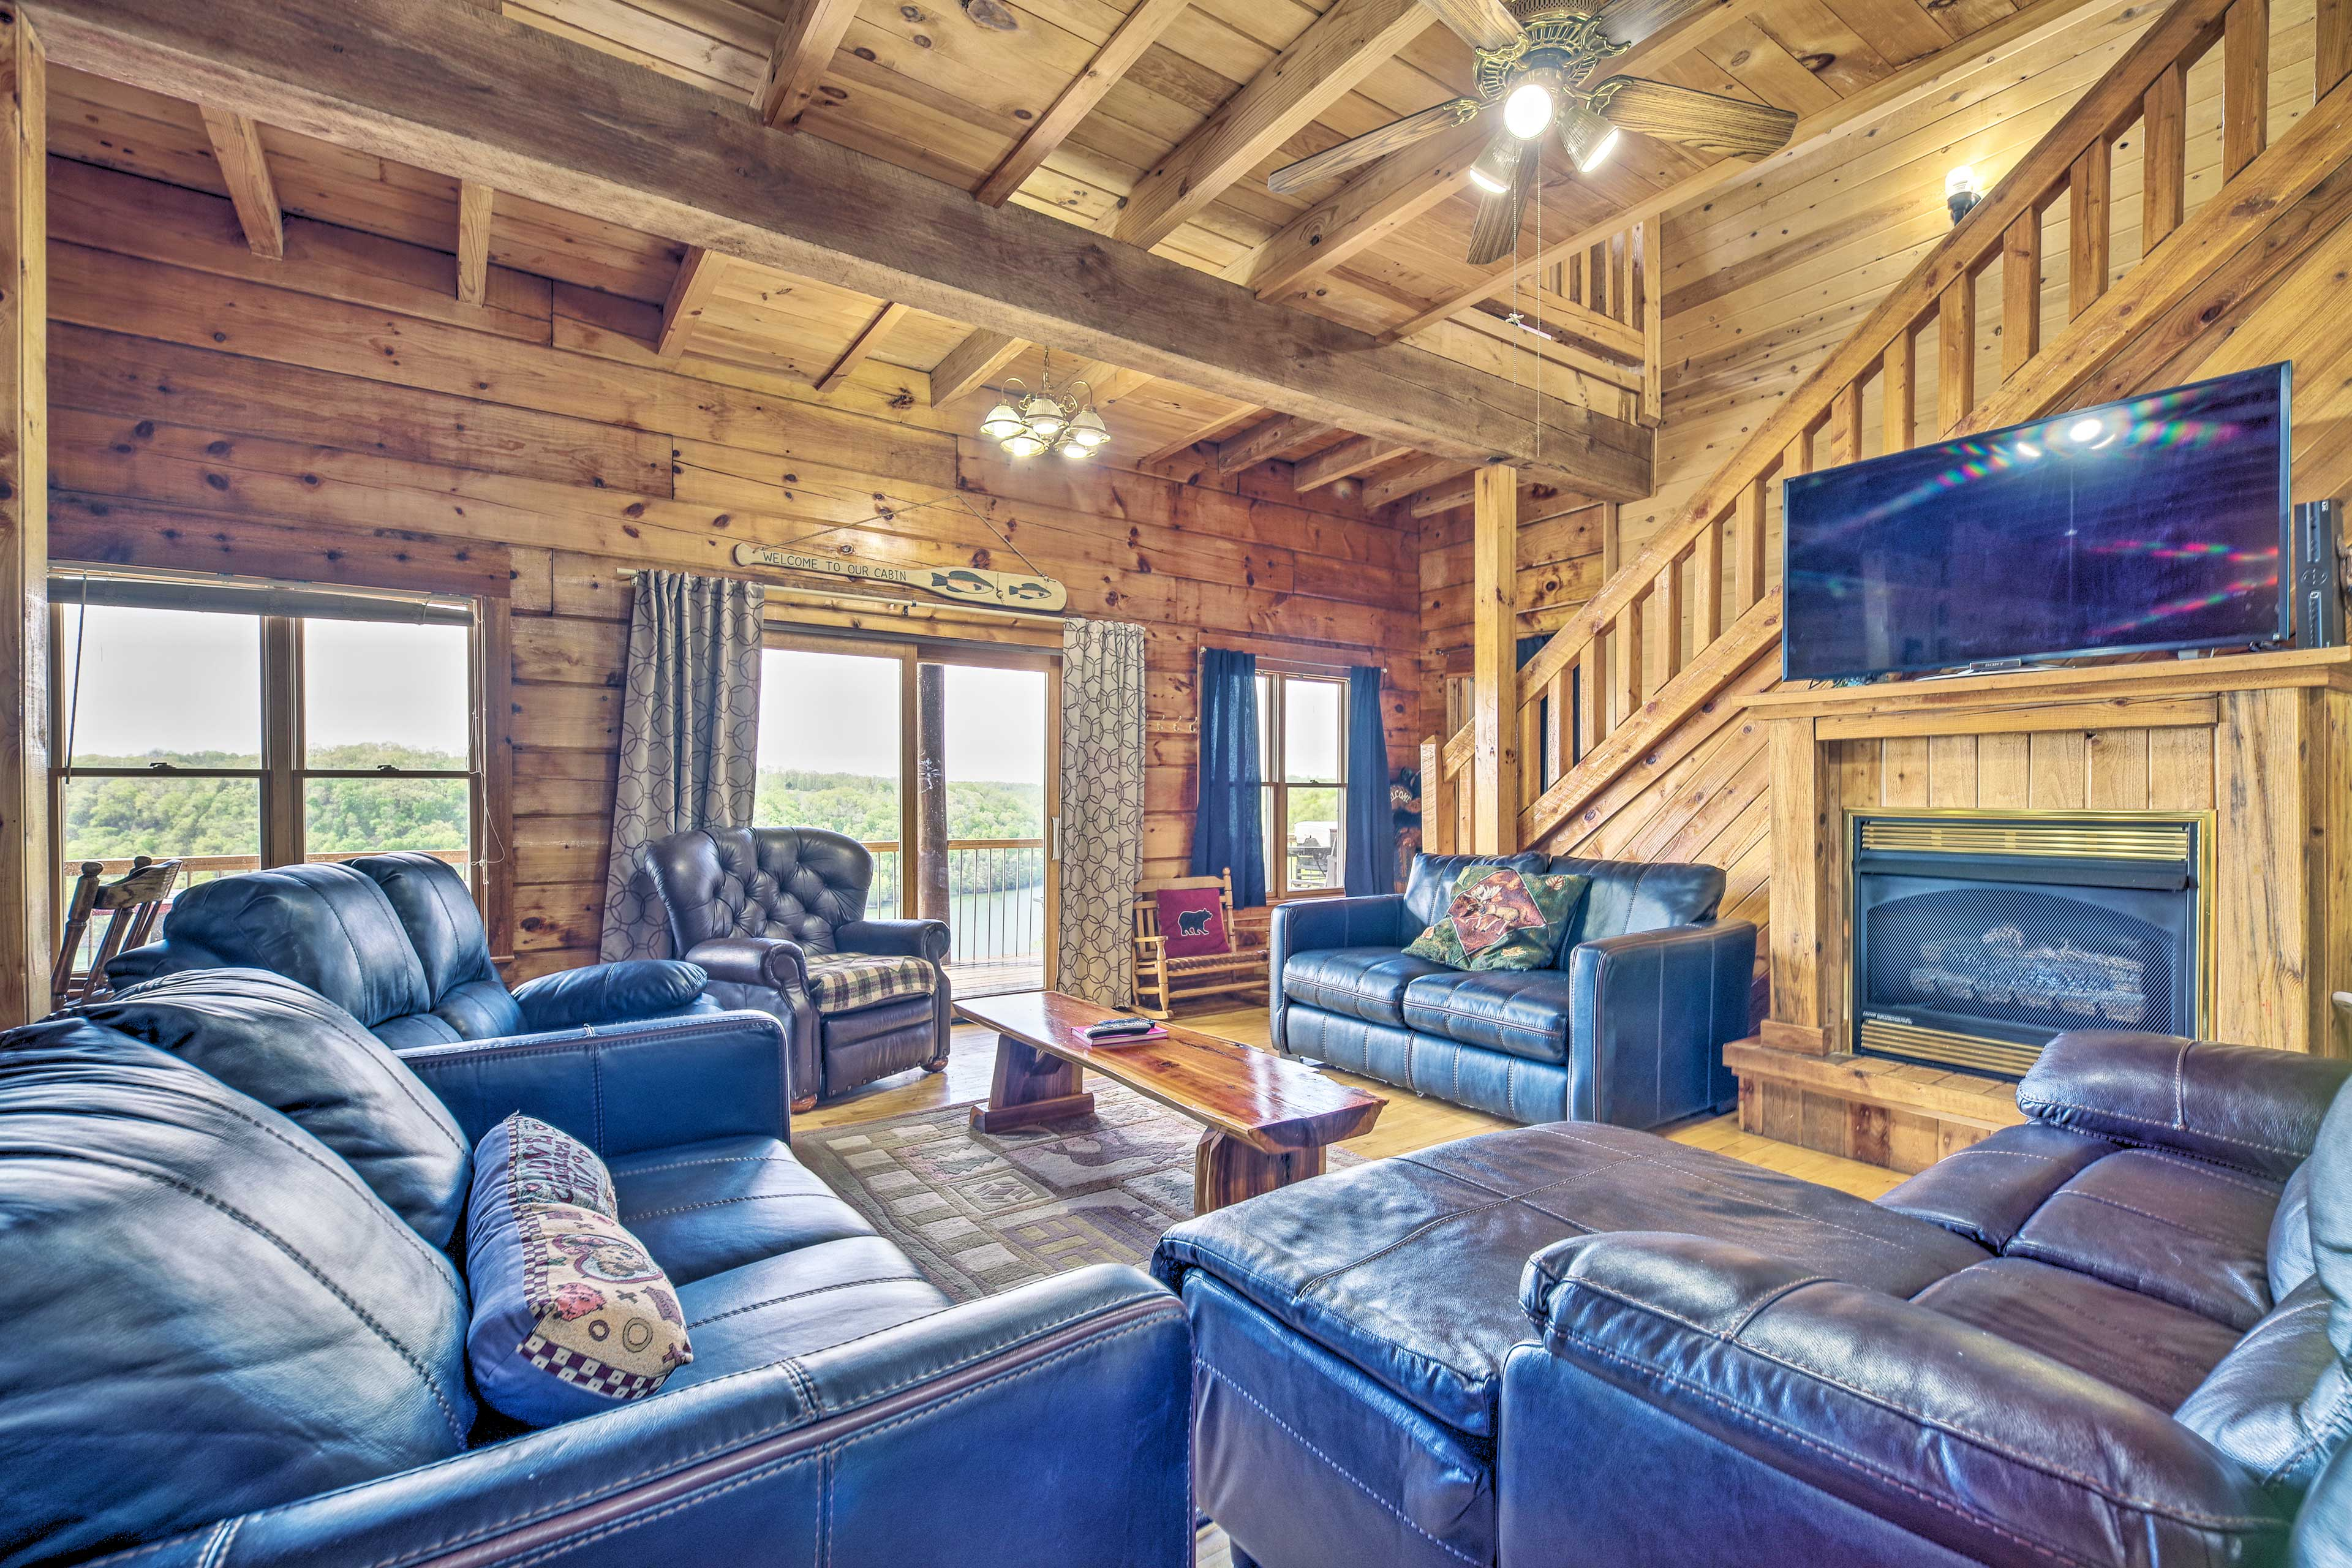 With 6 bedrooms and 3 bathrooms, this cabin is great for hosting families.